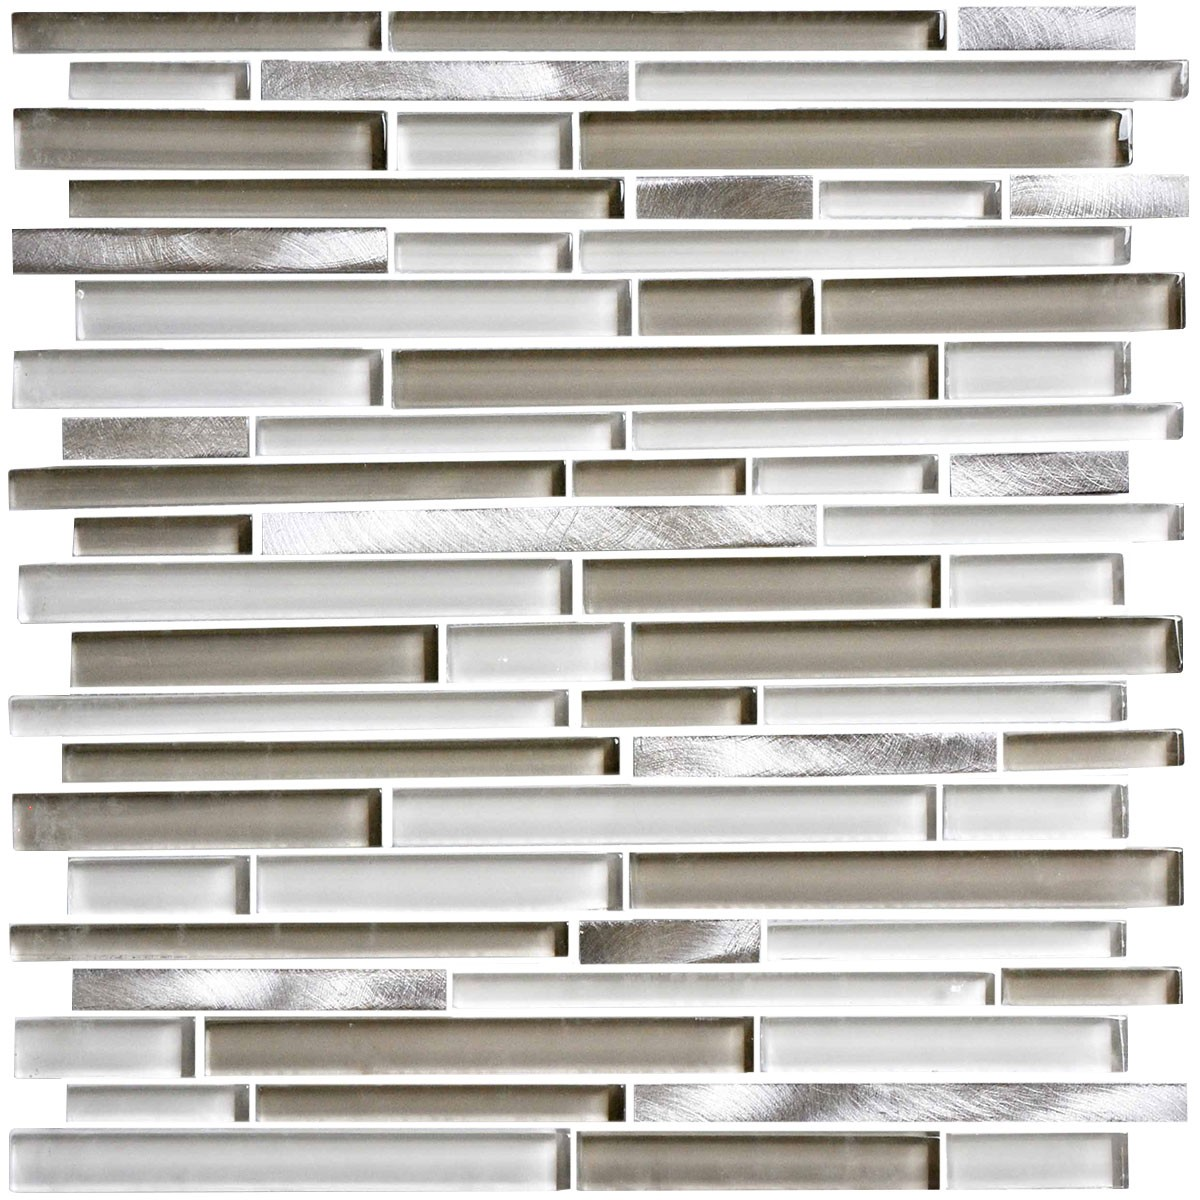 12 in. x 12 in. Electroplated Glass Mosaic Tile - 8mm Thickness (DK-MG10154914AR2)